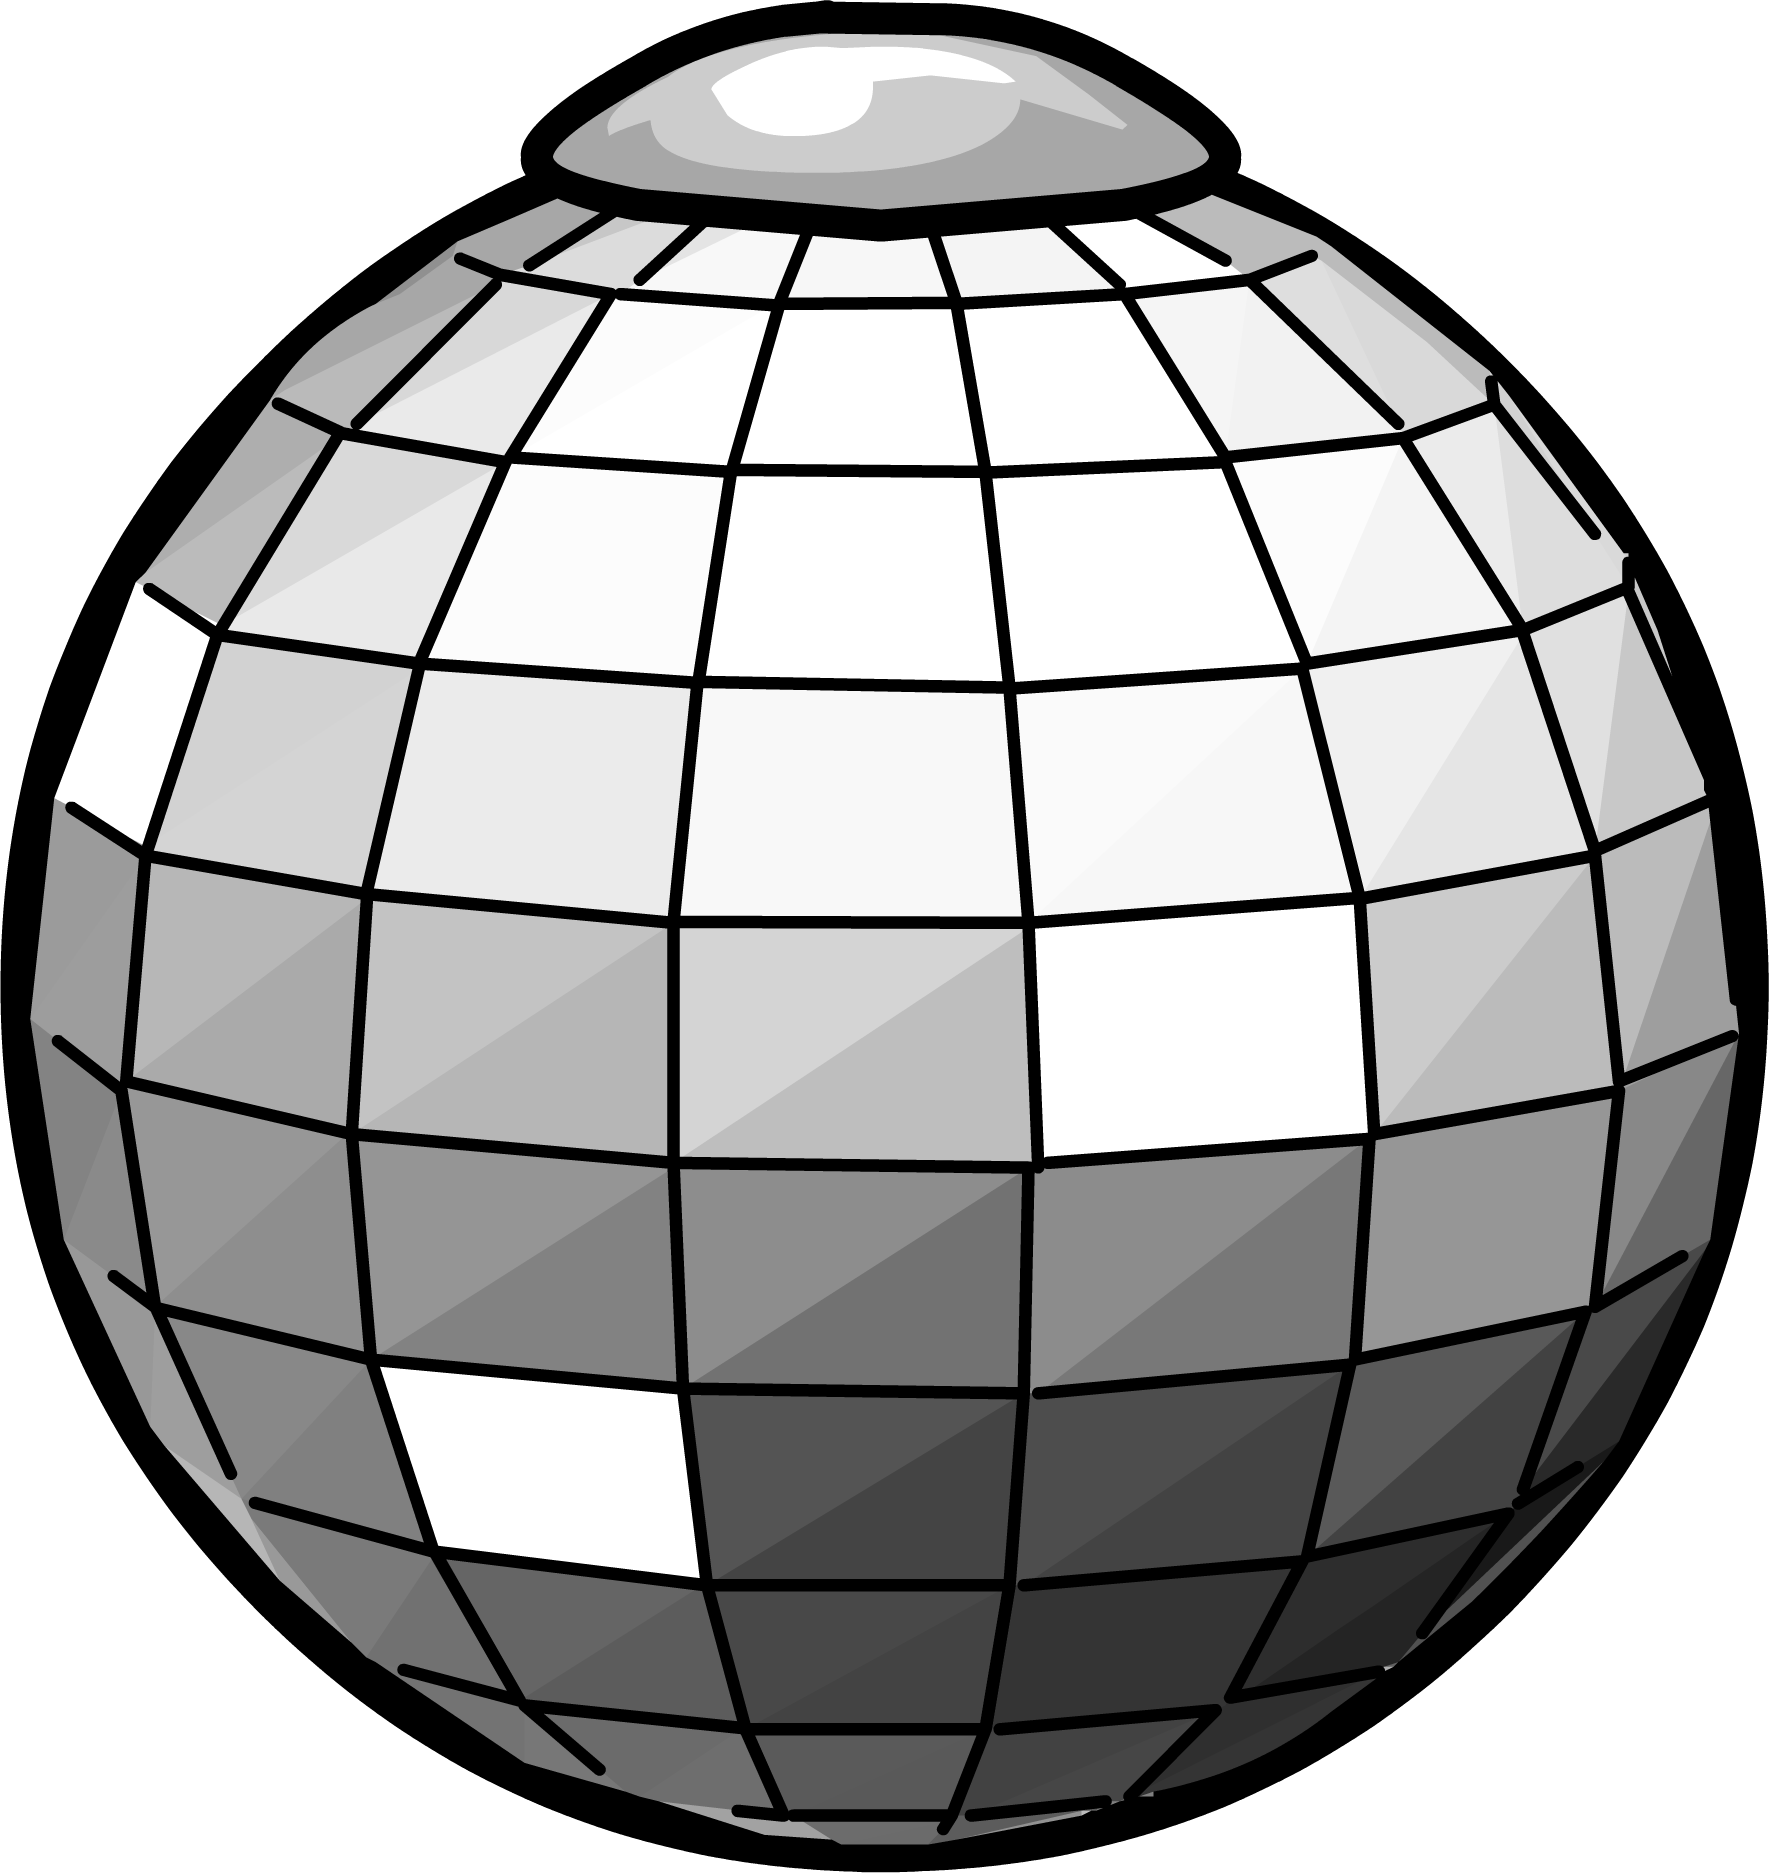 Disco Ball | Club Penguin Wiki | Fandom powered by Wikia